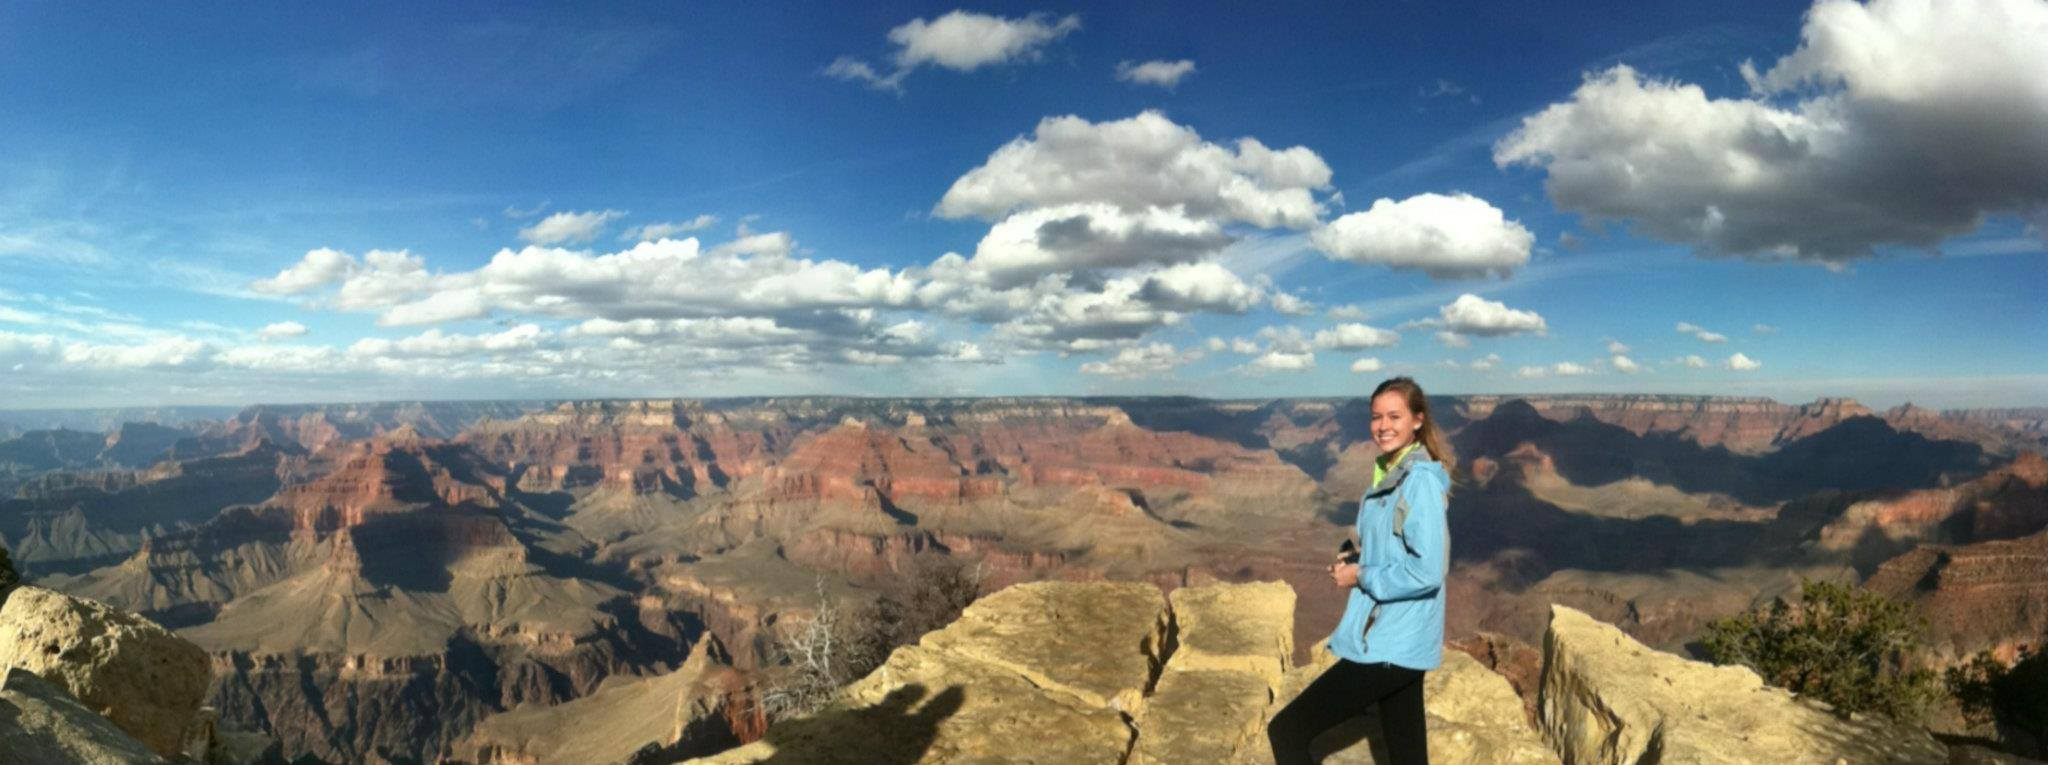 Grand Canyon National Park Lookout Julia Austin